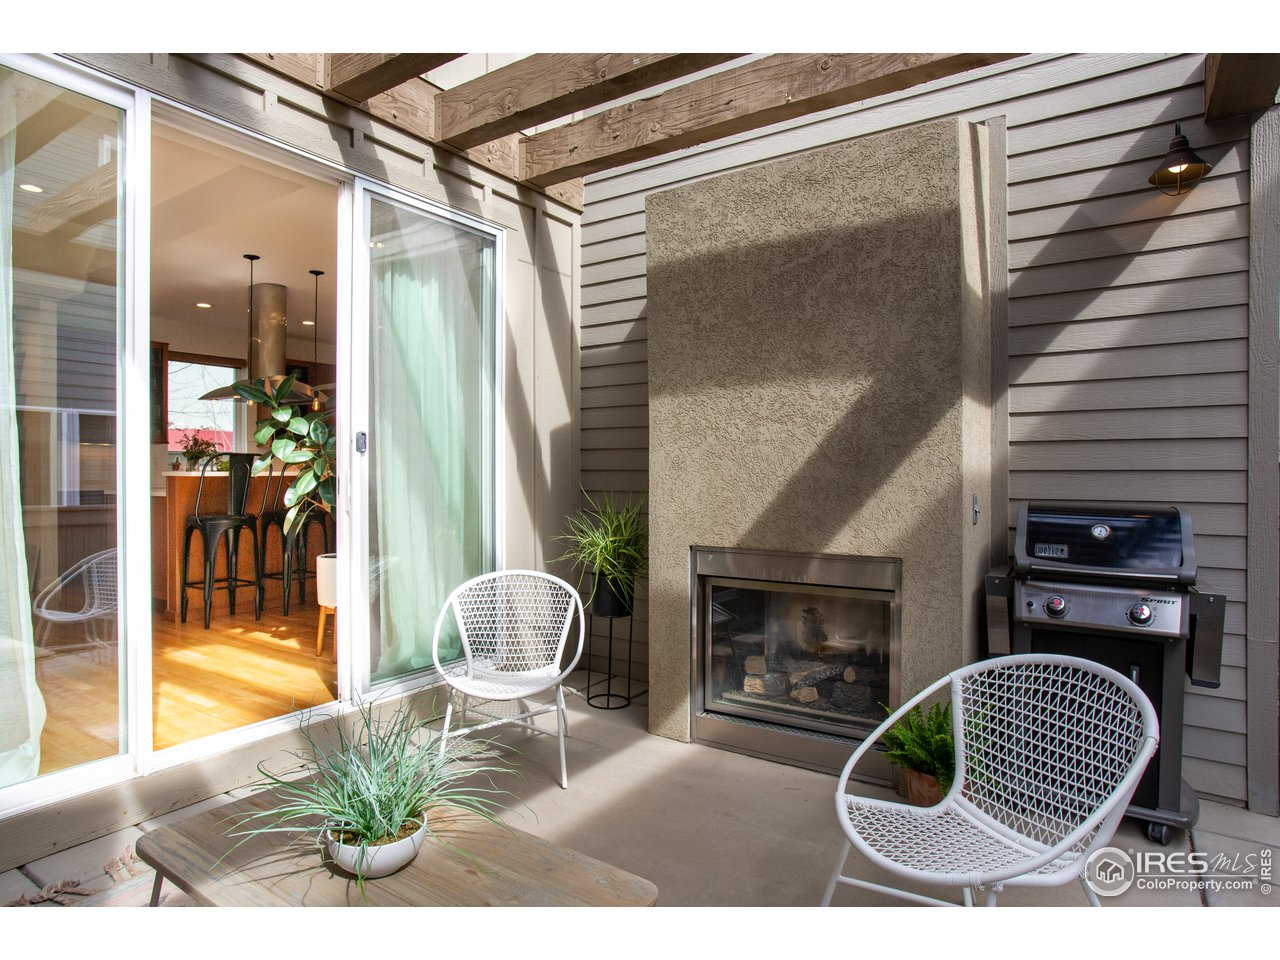 Courtyard patio with gas fireplace